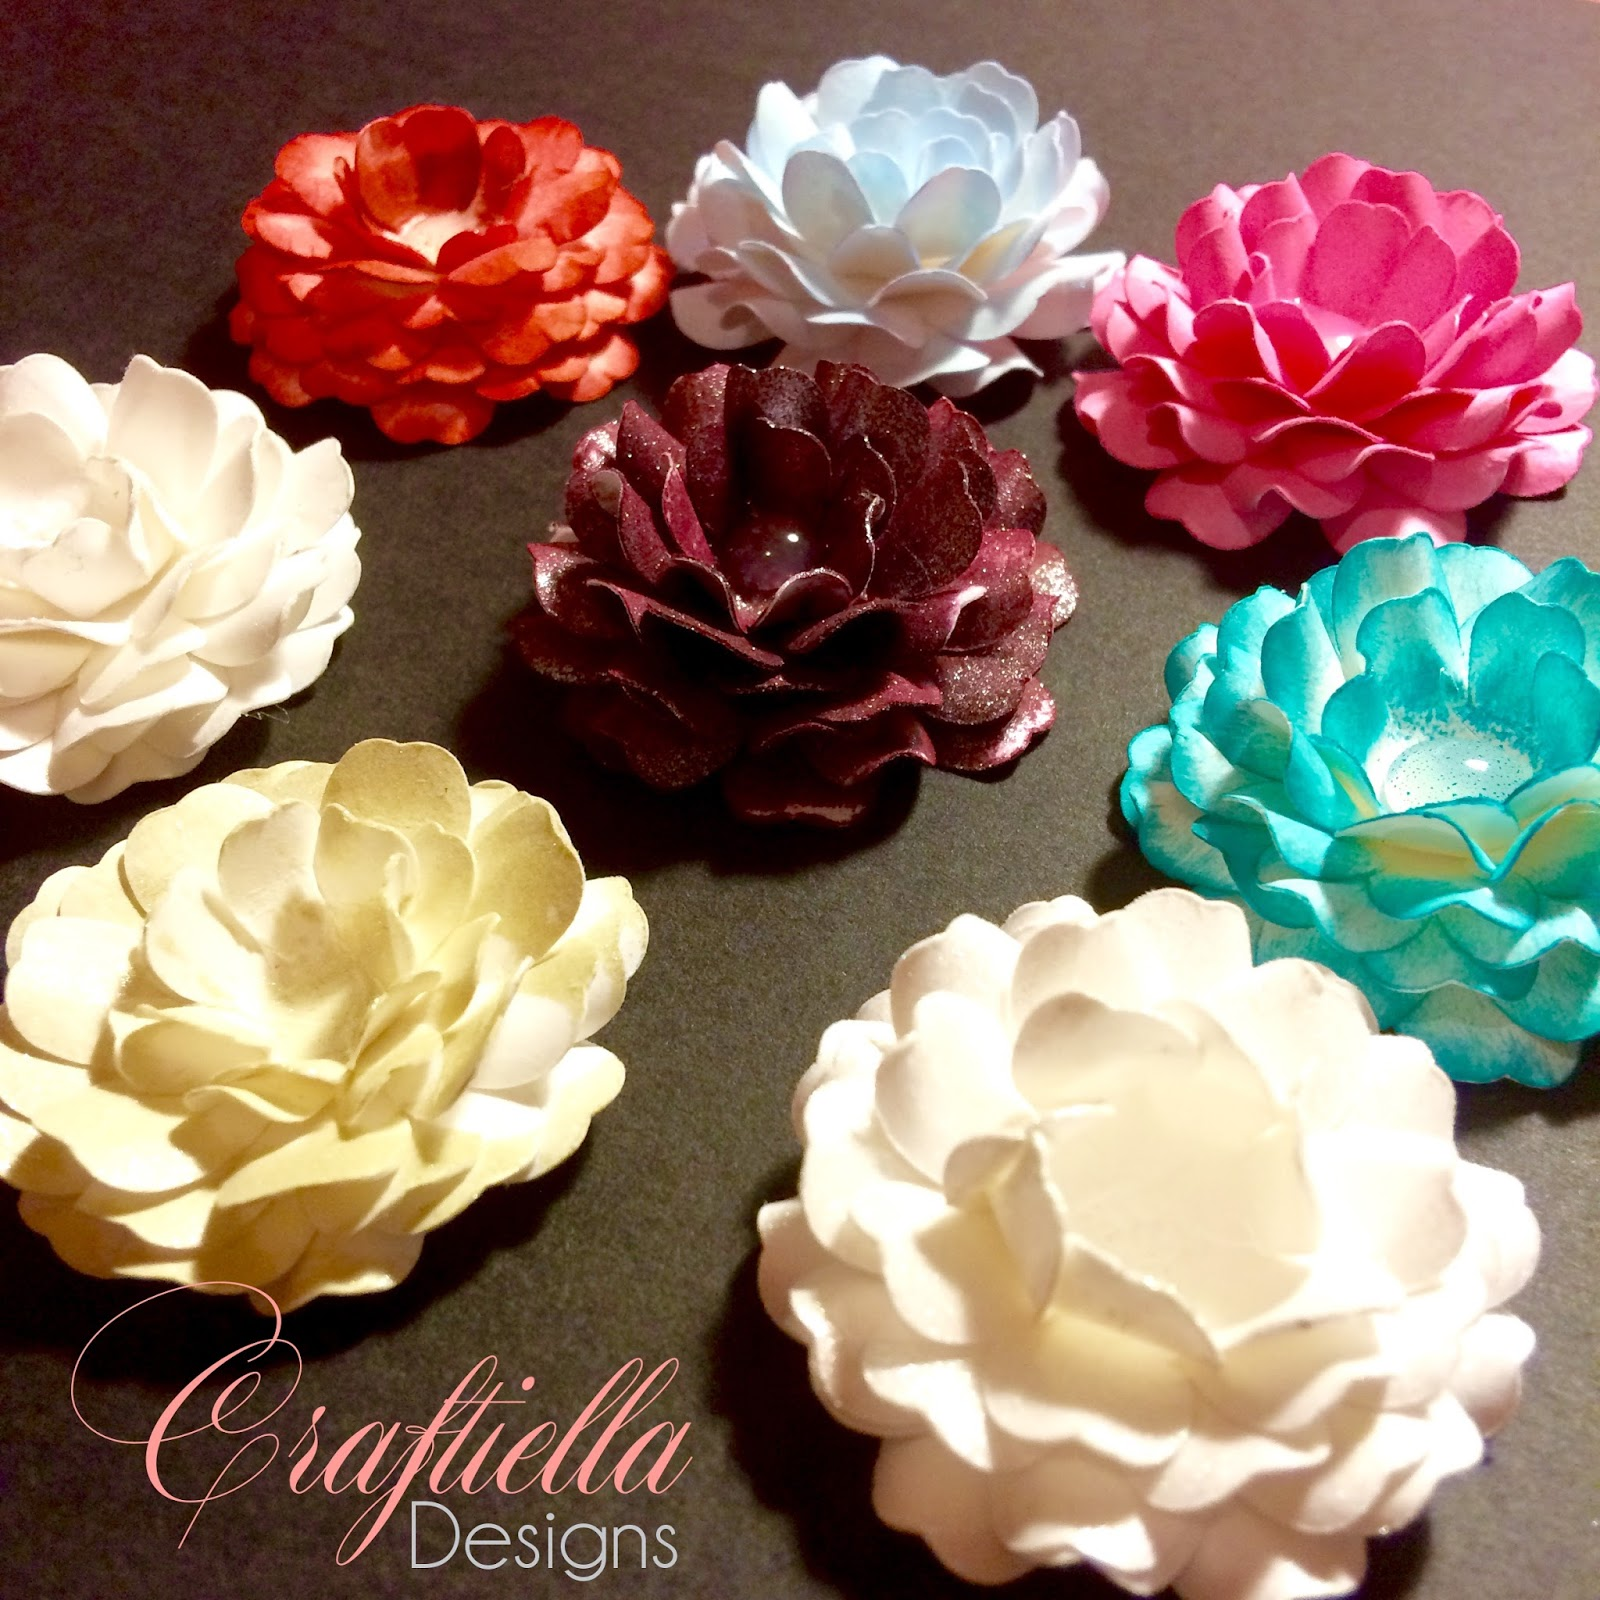 Mini paper flowers cricut craftiella designs if you are in love with paper flowers like i am then this project is for you weve seen them everywhere from joanns to many etsy shops online mightylinksfo